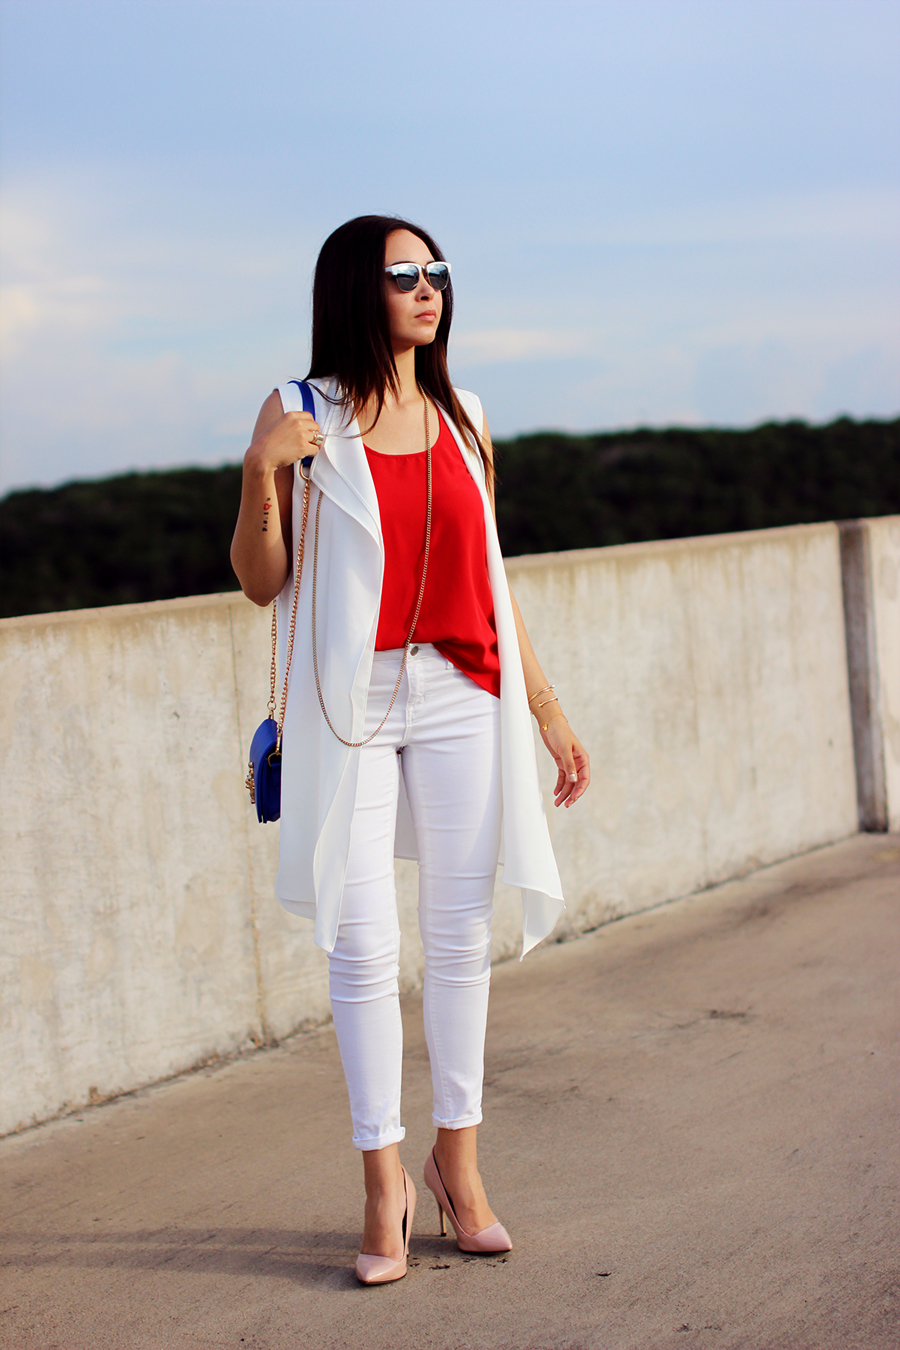 Fixin To Thrill |Austin Fashion Blog: 4th of July Outfit Inspo